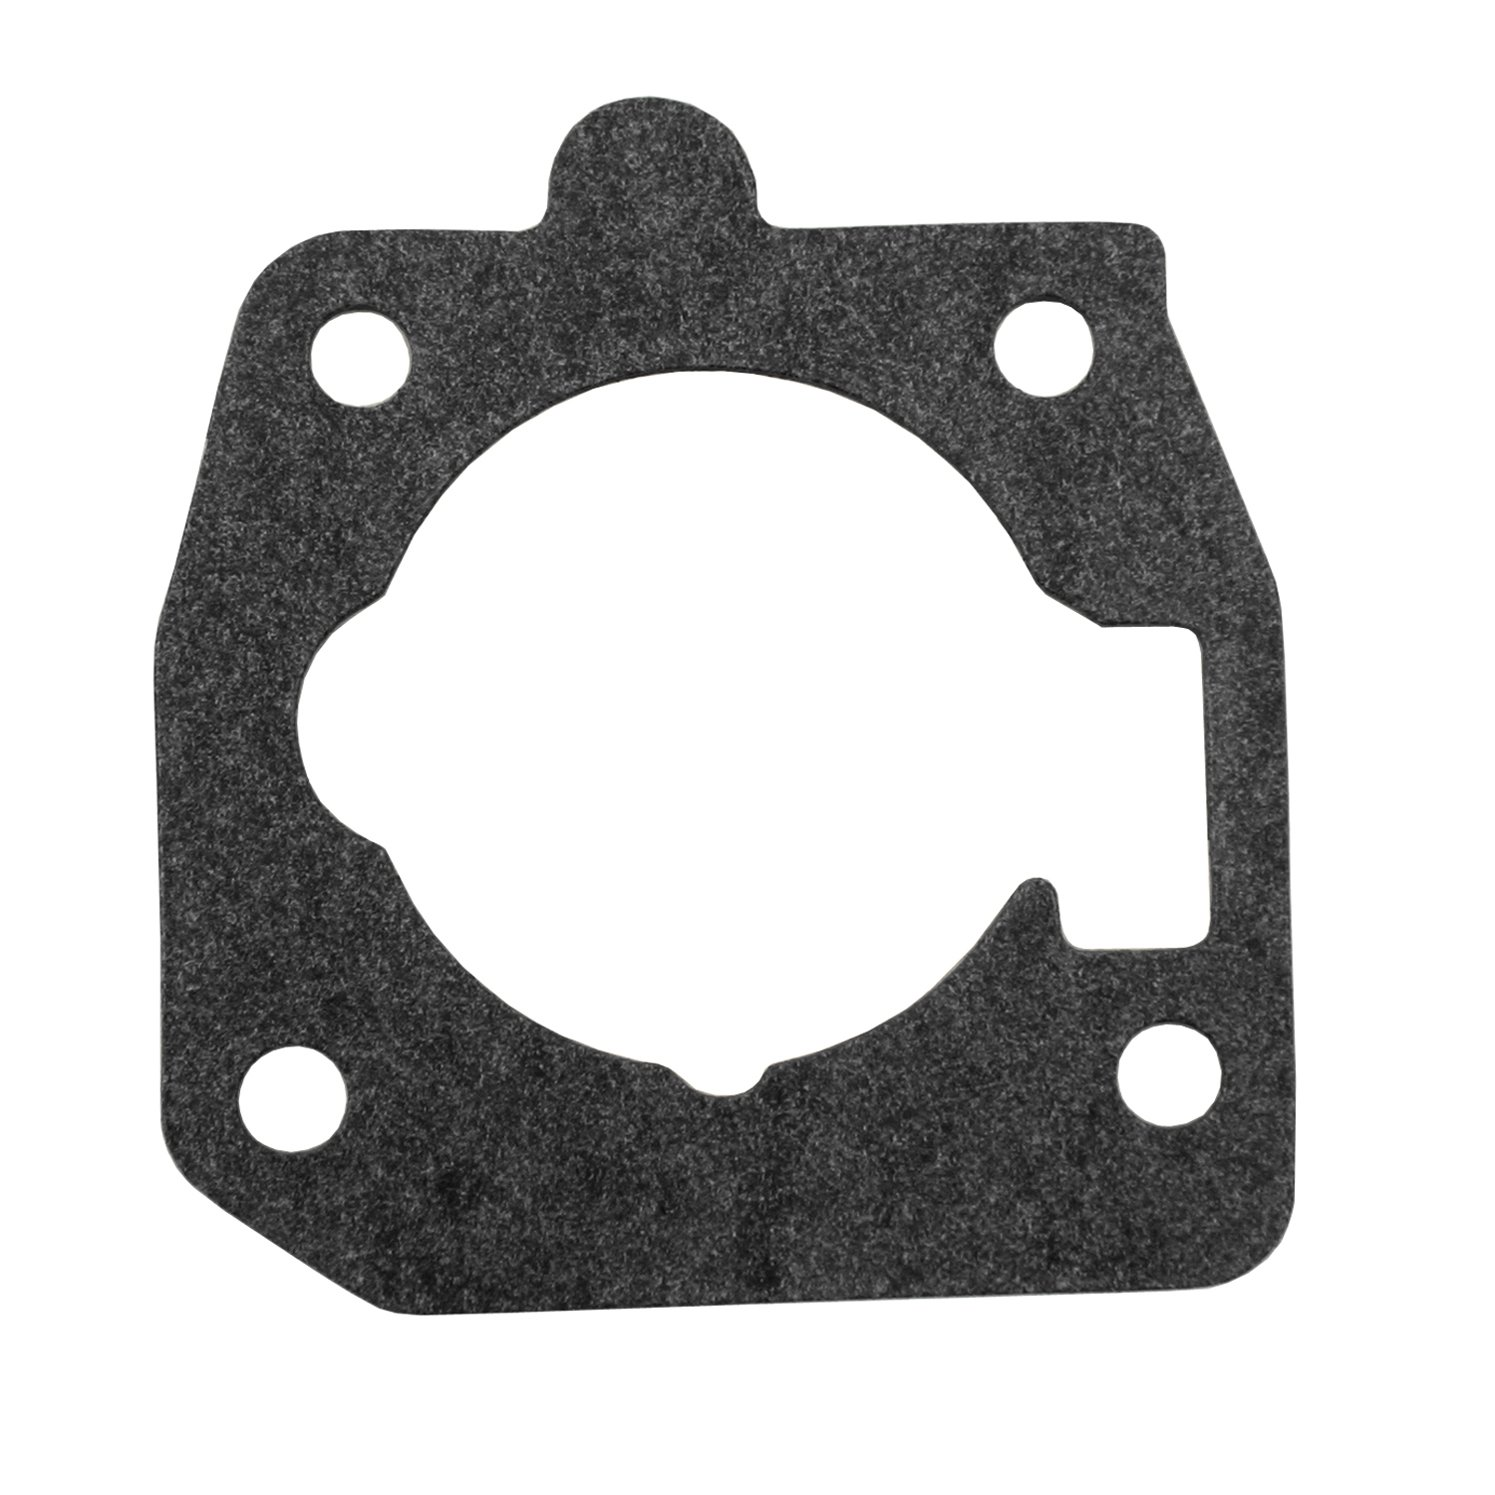 Beck Arnley 039-5059 Throttle Body Gasket